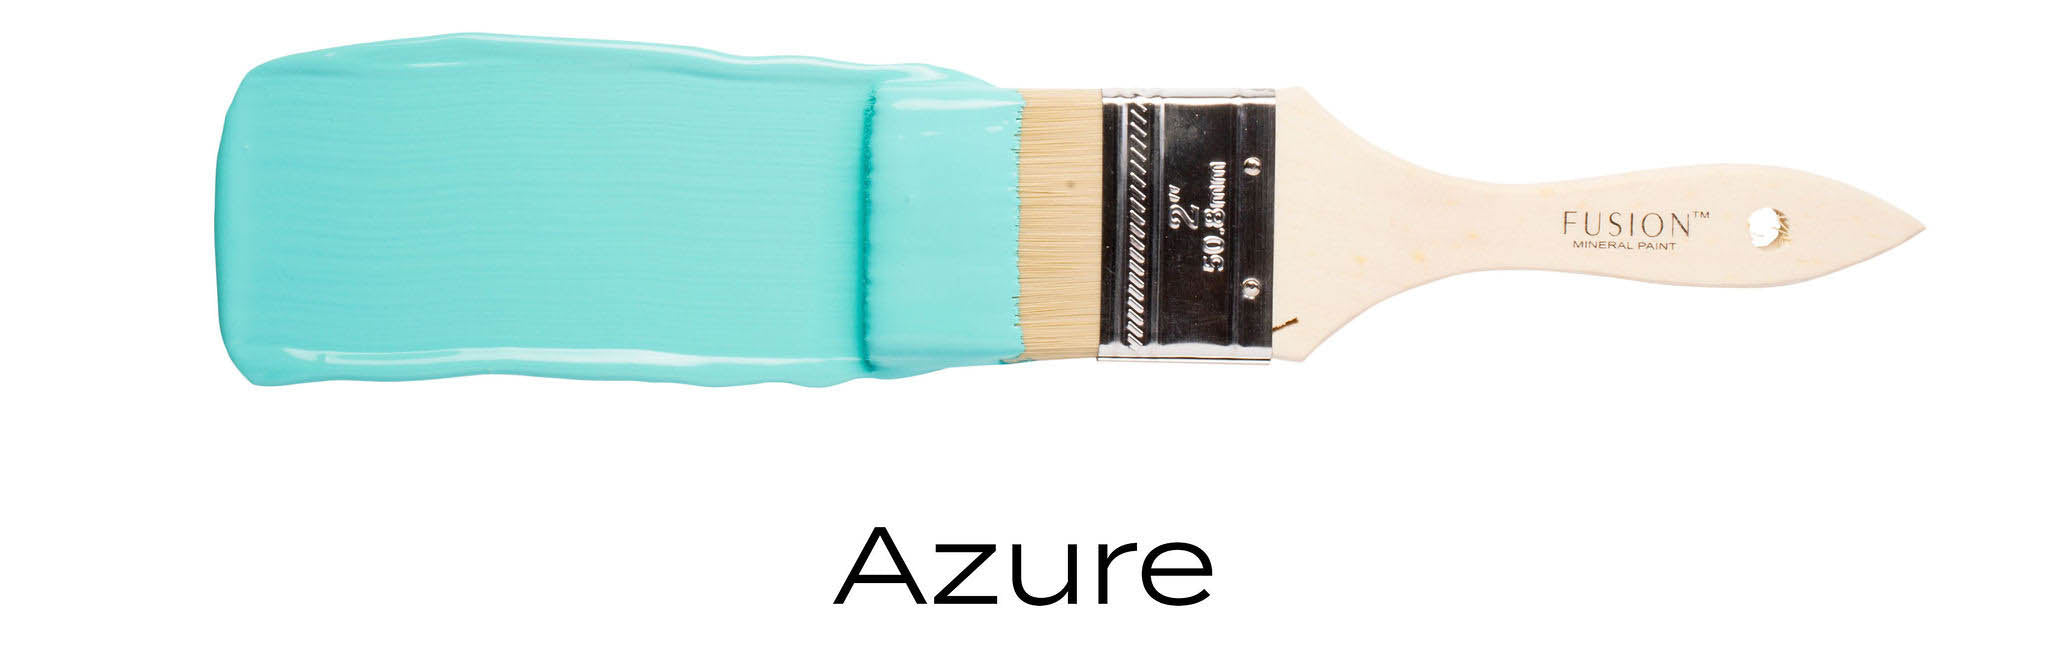 Azure Fusion Mineral Paint Furniture Paint Colour Example, No Prep or top coat needed, UK Stockist